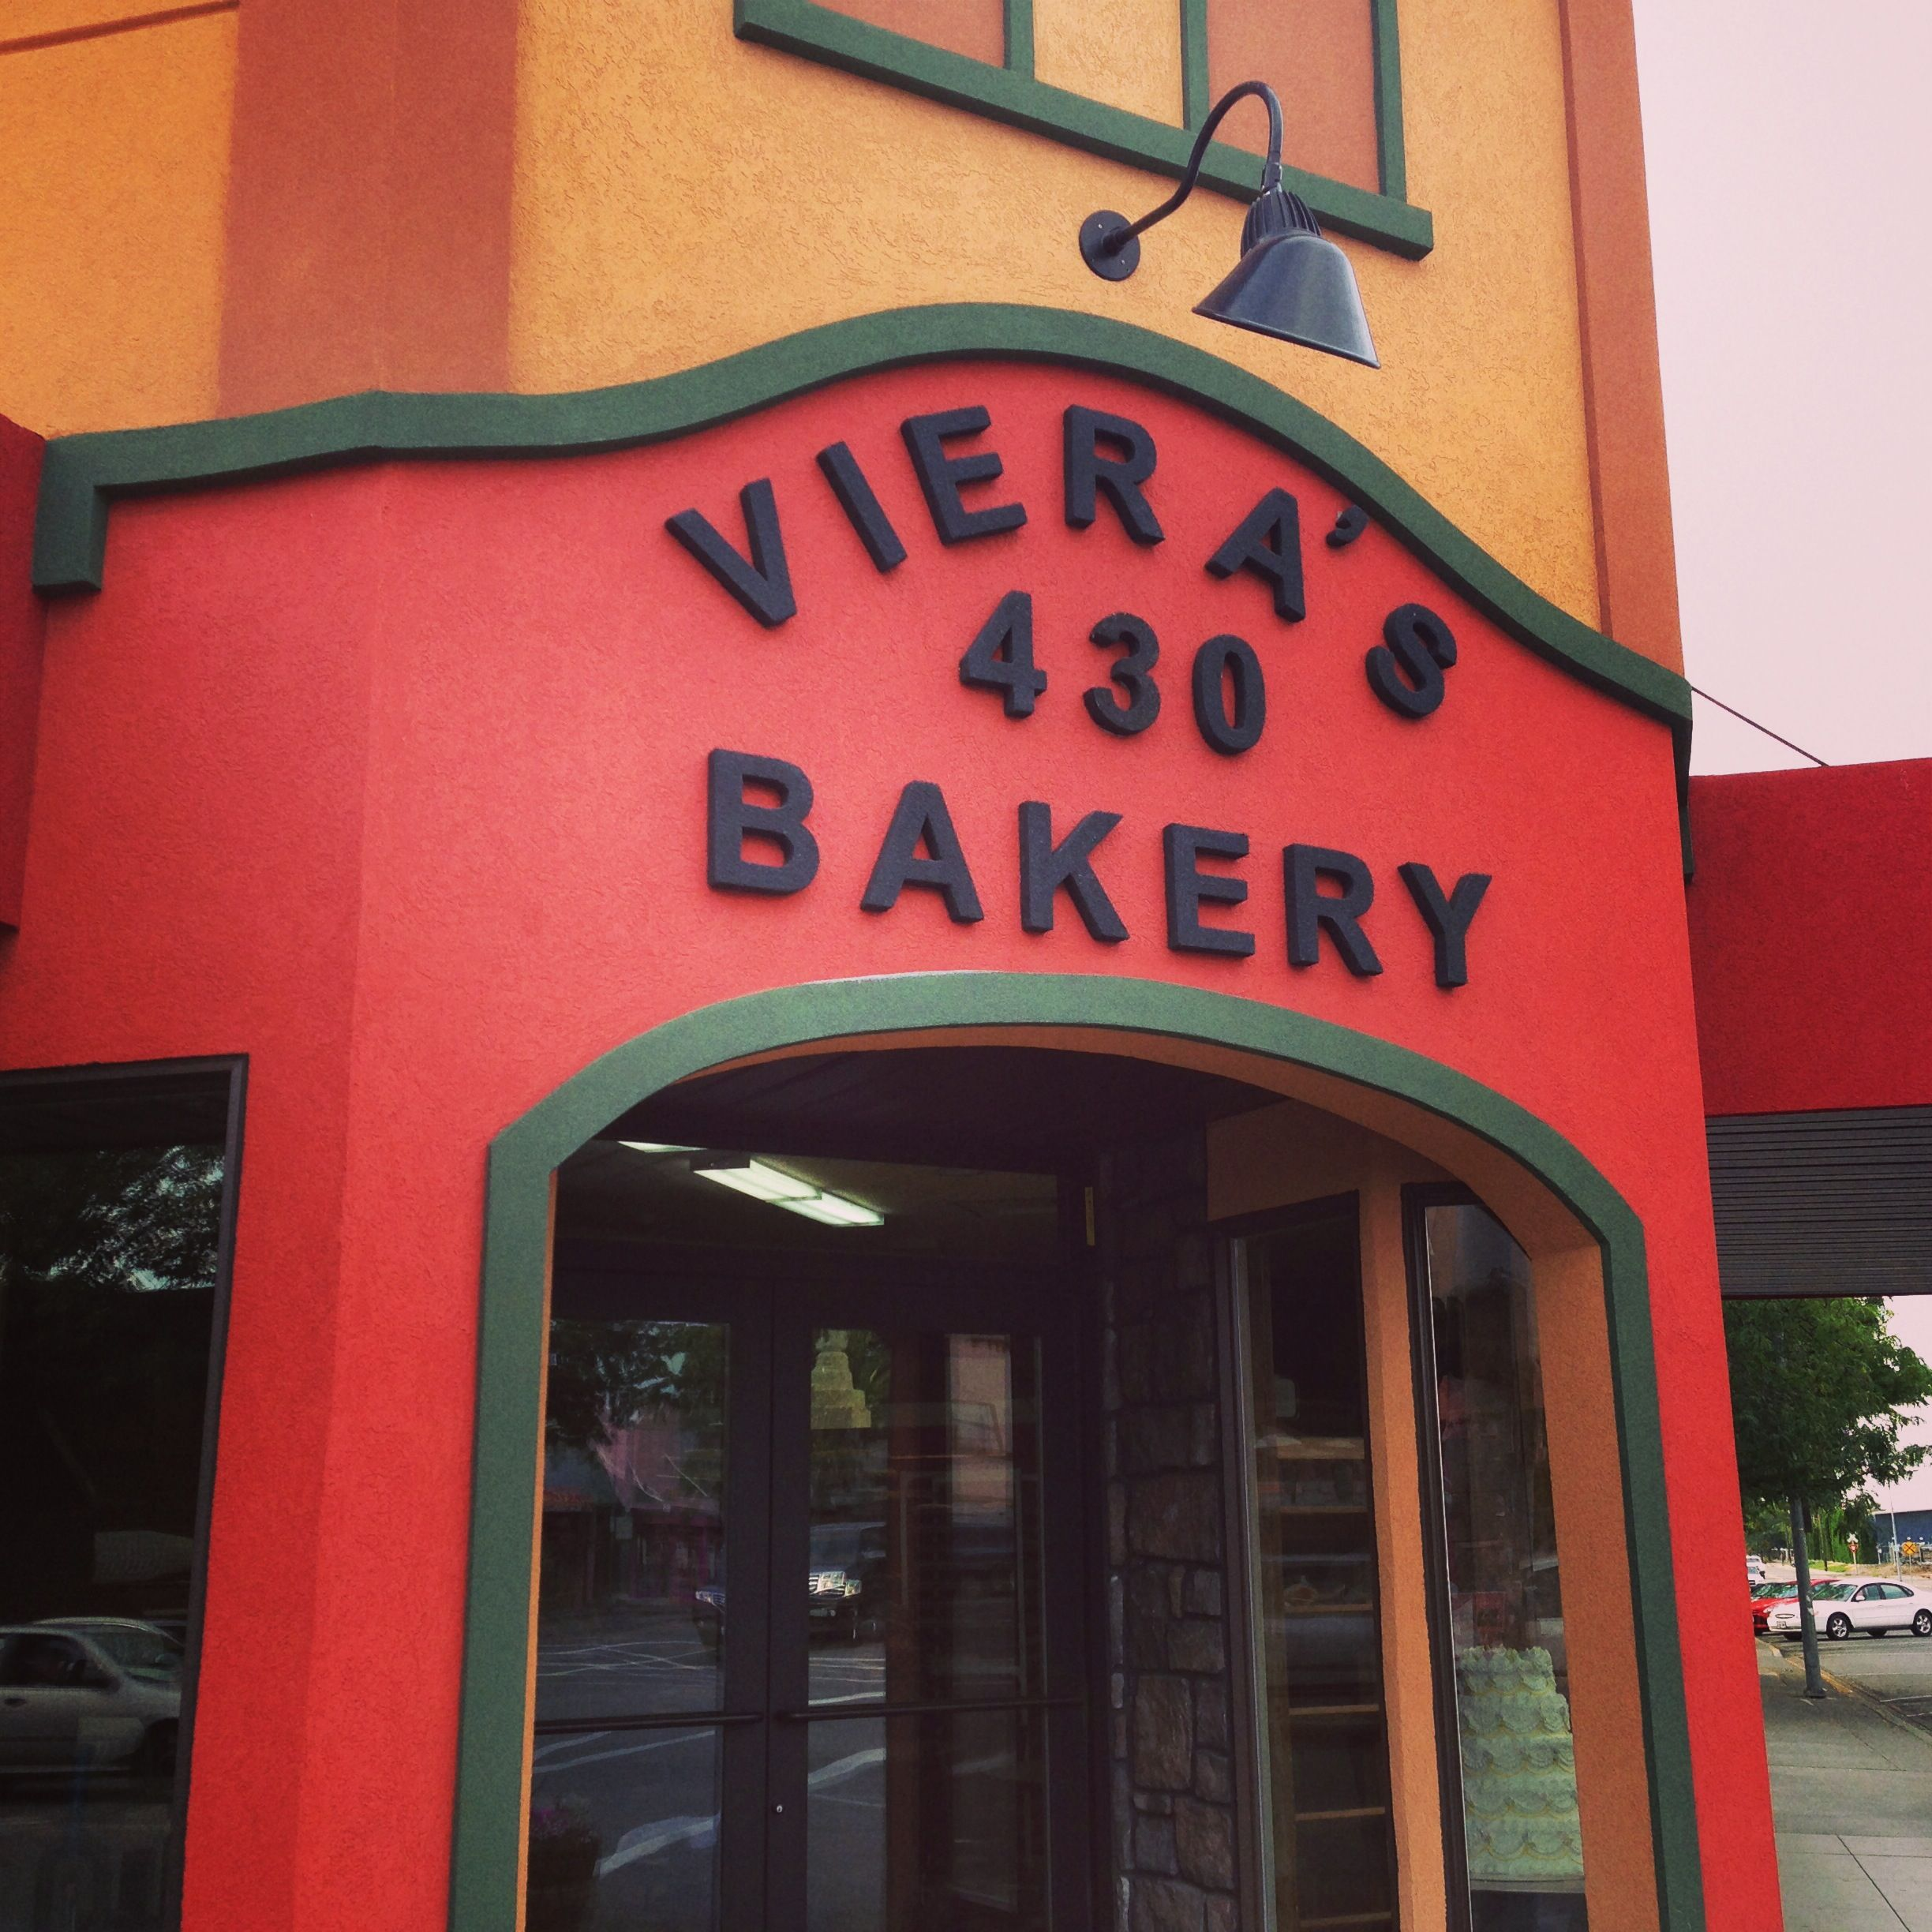 Vieras Bakery In Downtown Pasco Wa All Of The Baked Goods Tricities Tricitieswa Sweets Tri Cities In Season Produce Award Winning Wine